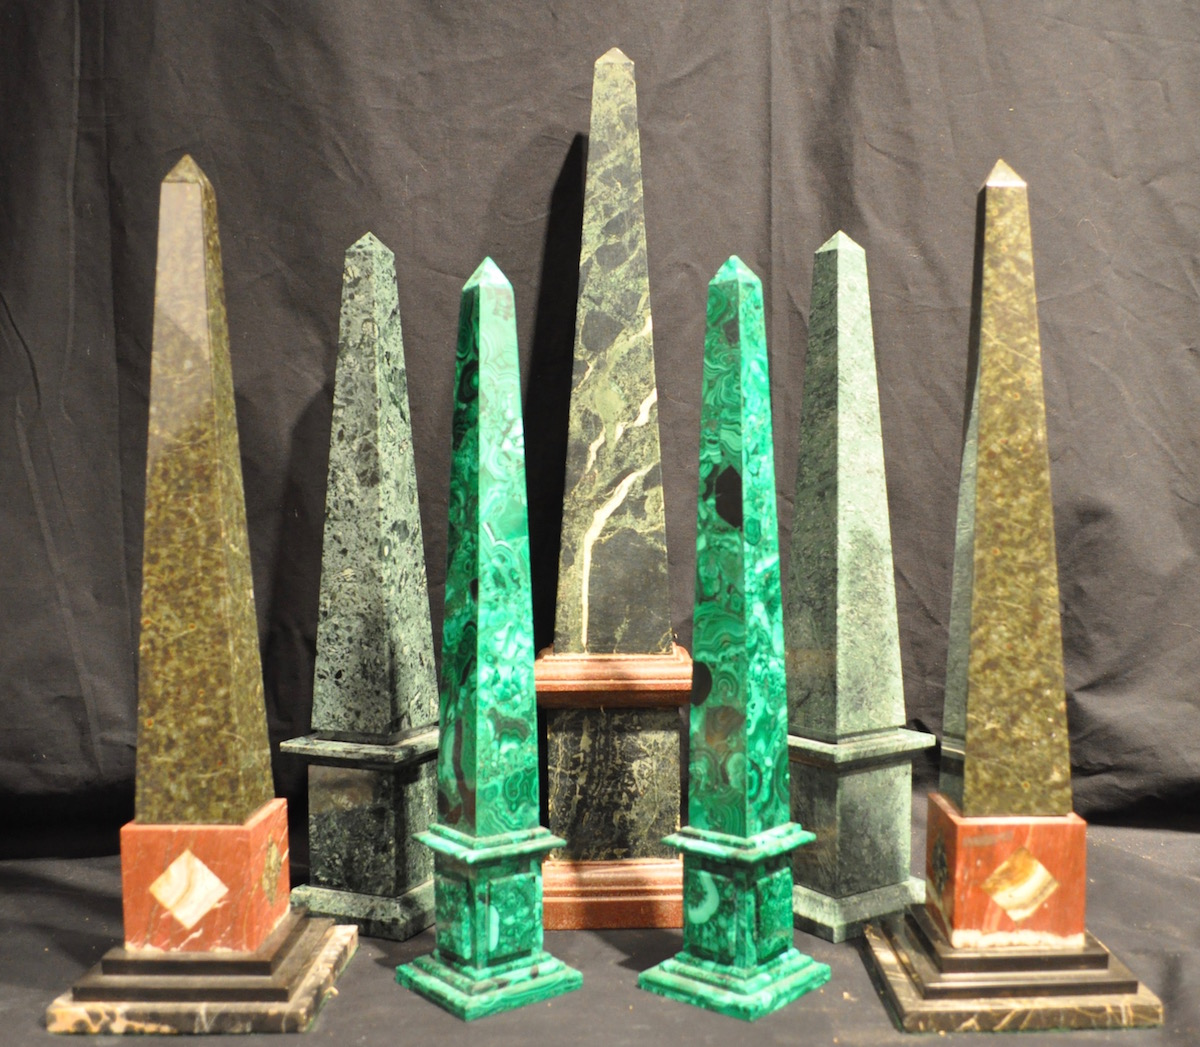 Green obelisks from Only Obelisks